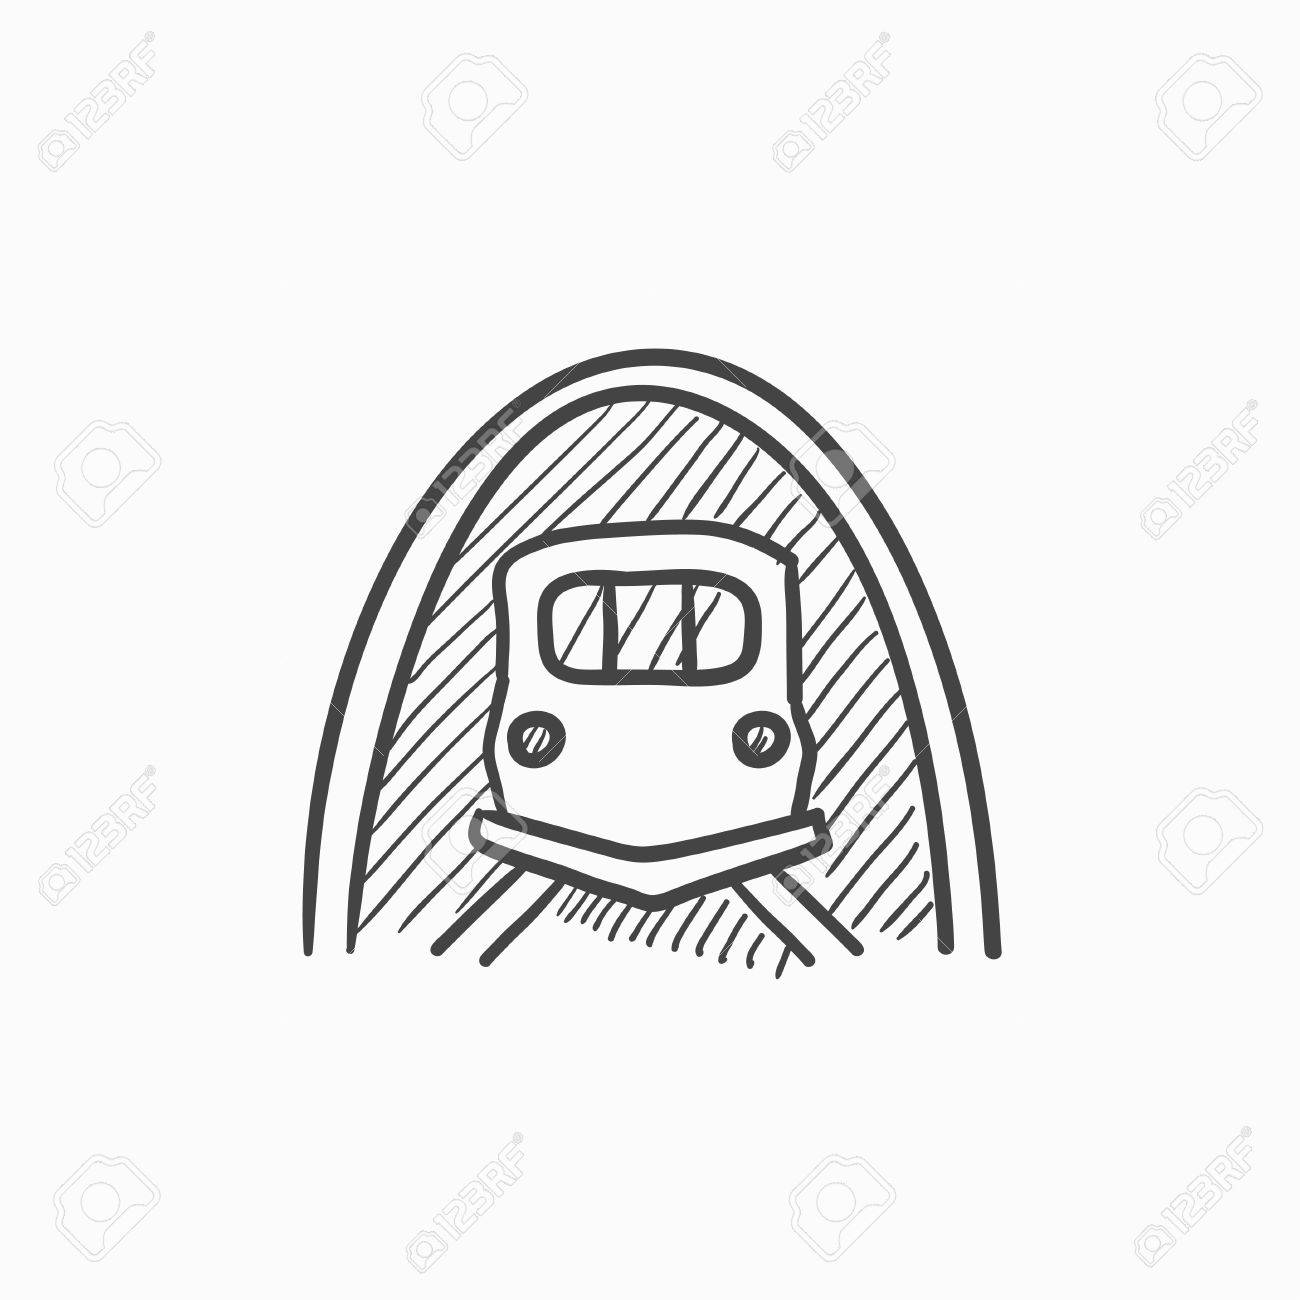 1300x1300 Railway Tunnel Vector Sketch Icon Isolated On Background. Hand